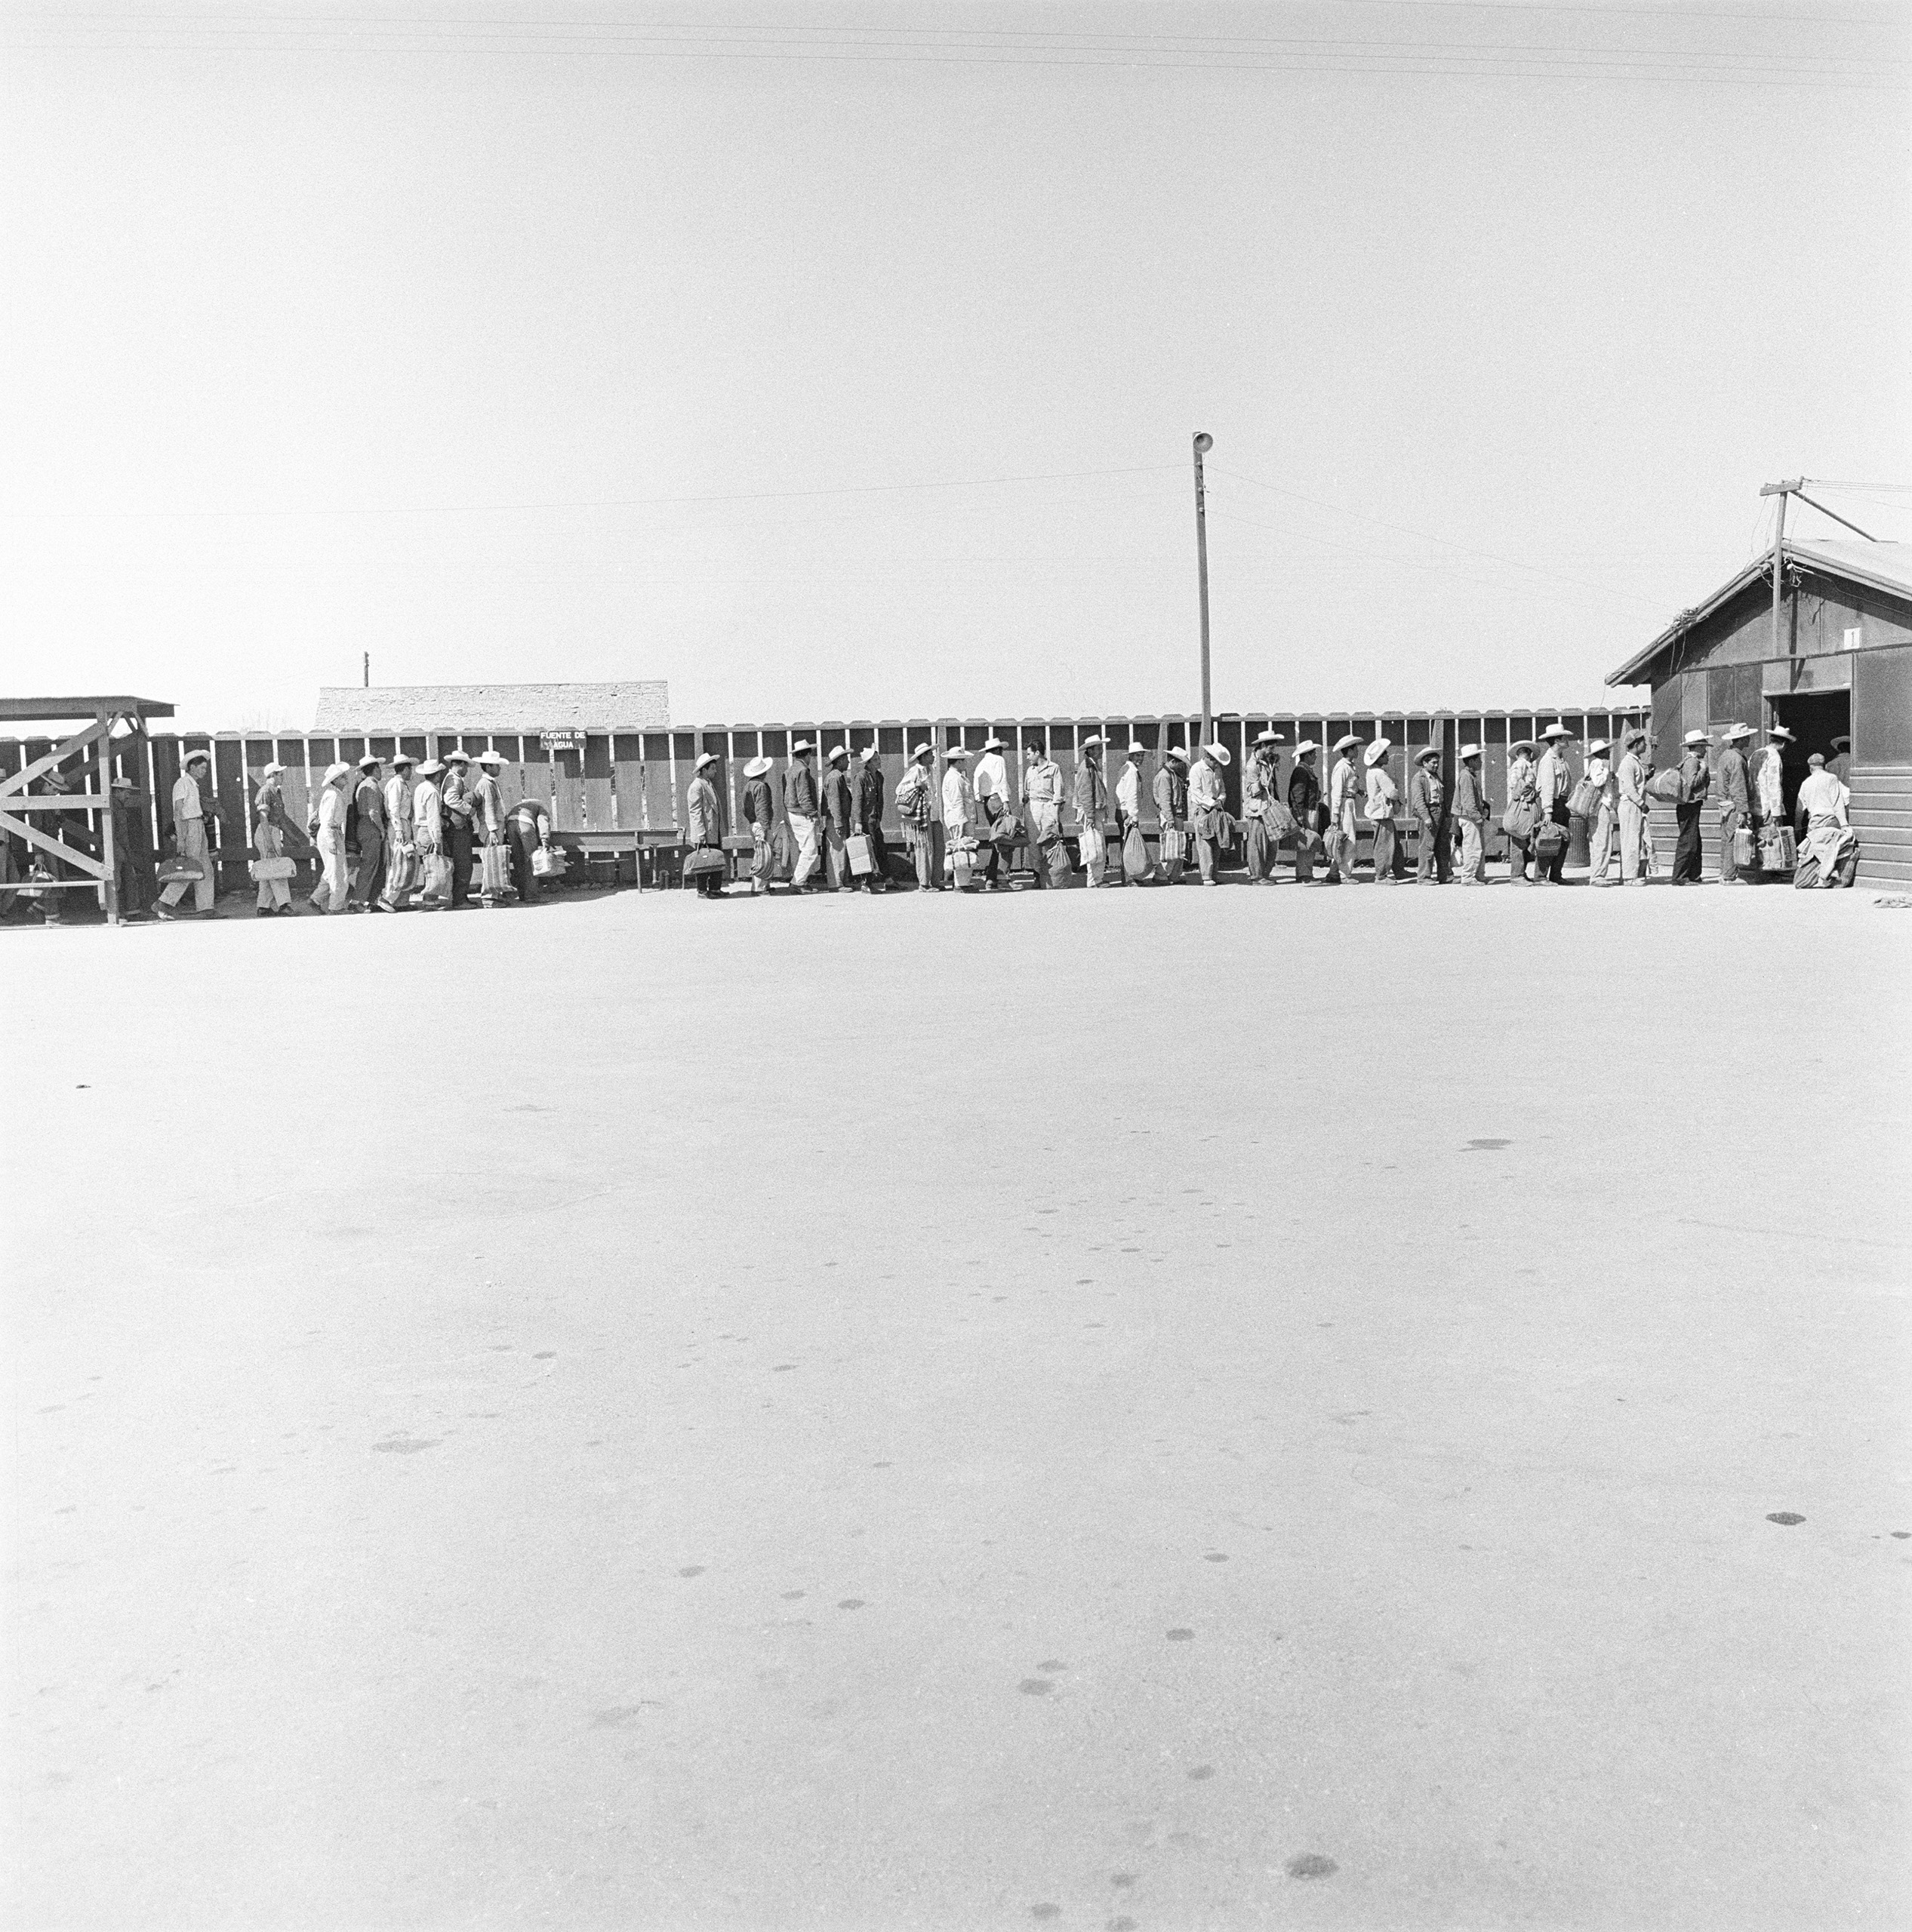 Mexican laborers in line at a reception depot for processing and assignment in El Centro, Calif., 1957.